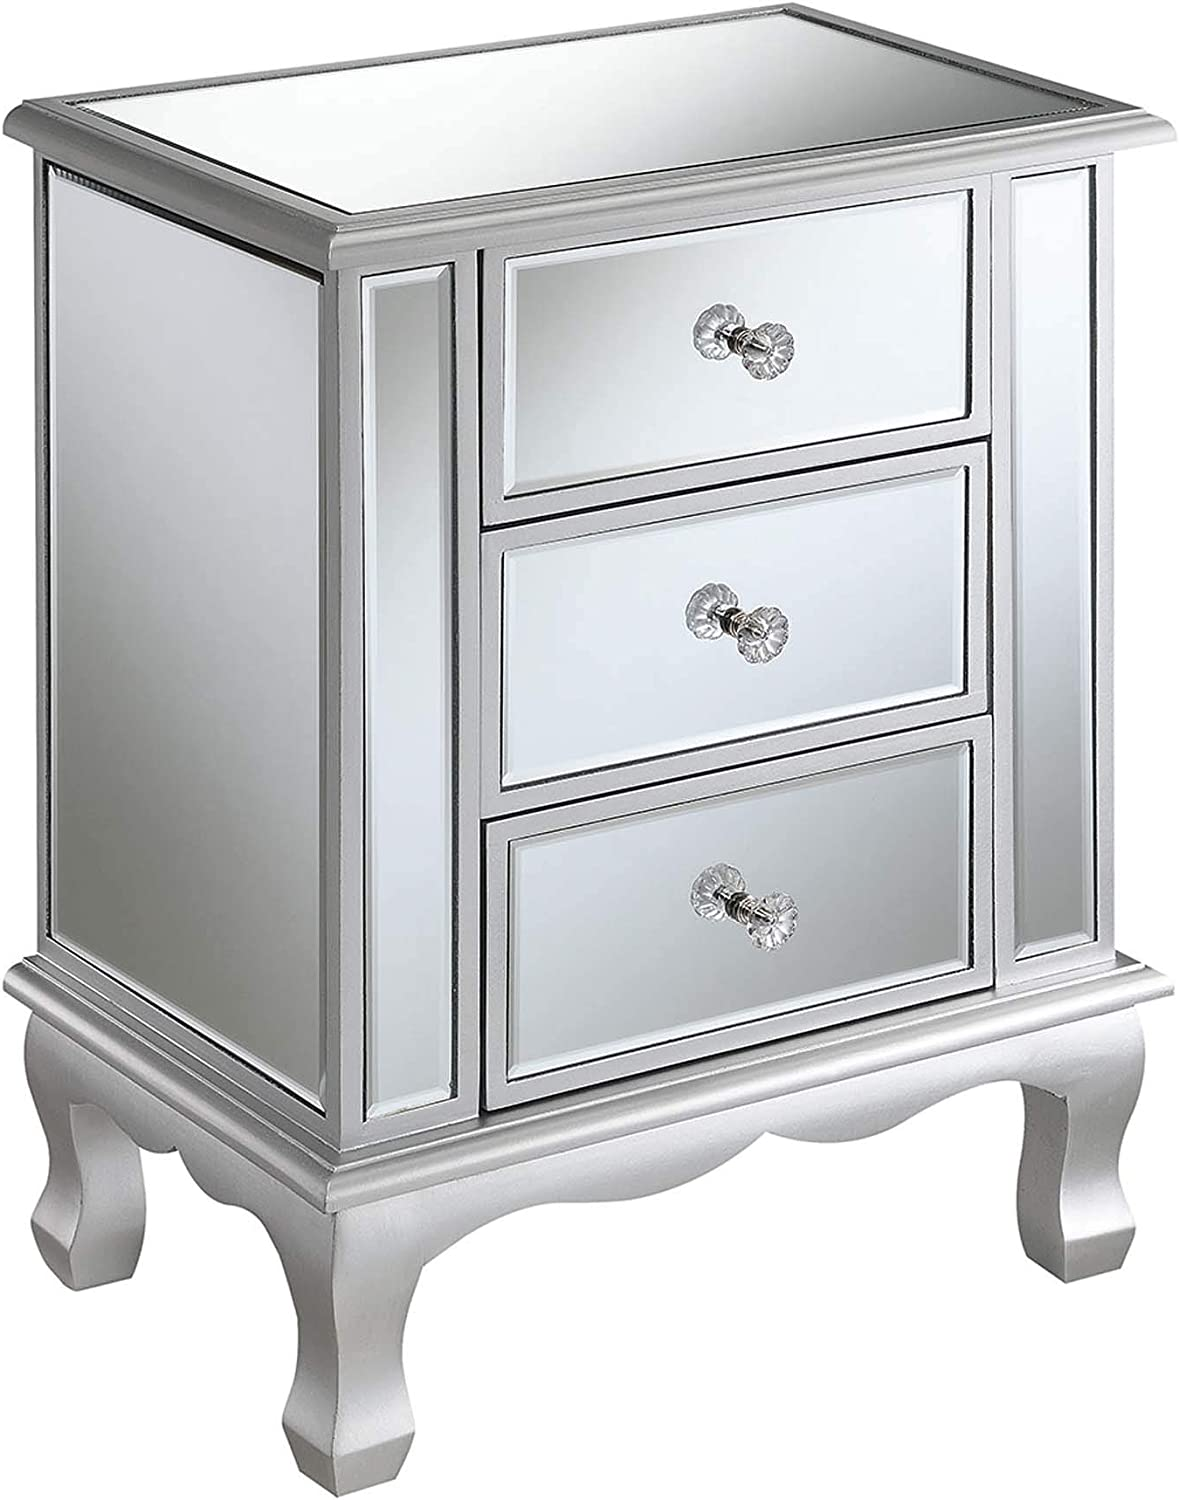 Convenience Concepts Gold Coast Vineyard 3 Drawer Mirrored End Table, Silver / Mirror